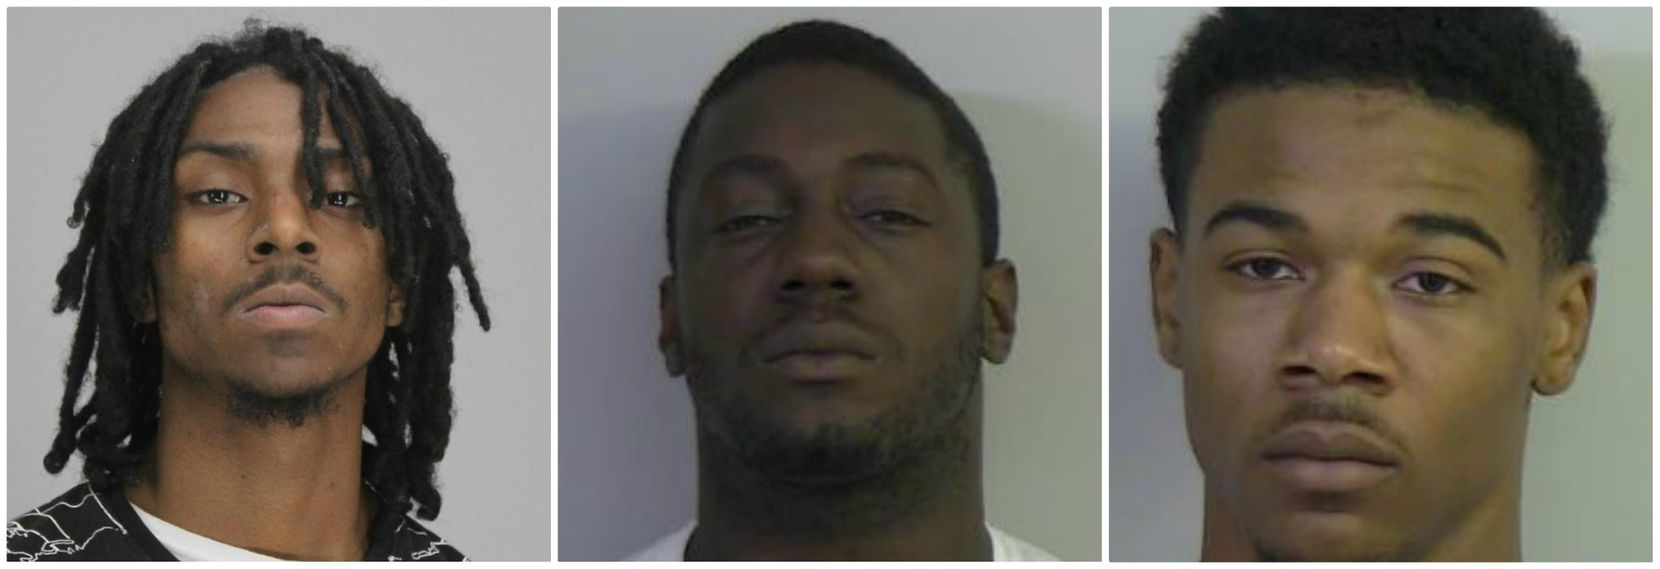 From left: Kiante Bernard Watkins, Milton Leroy Prentice III and Bryan Dominik Groom have been arrested in connection with the fatal home invasion robbery of Jimmy Giddings on June 24, 2018.